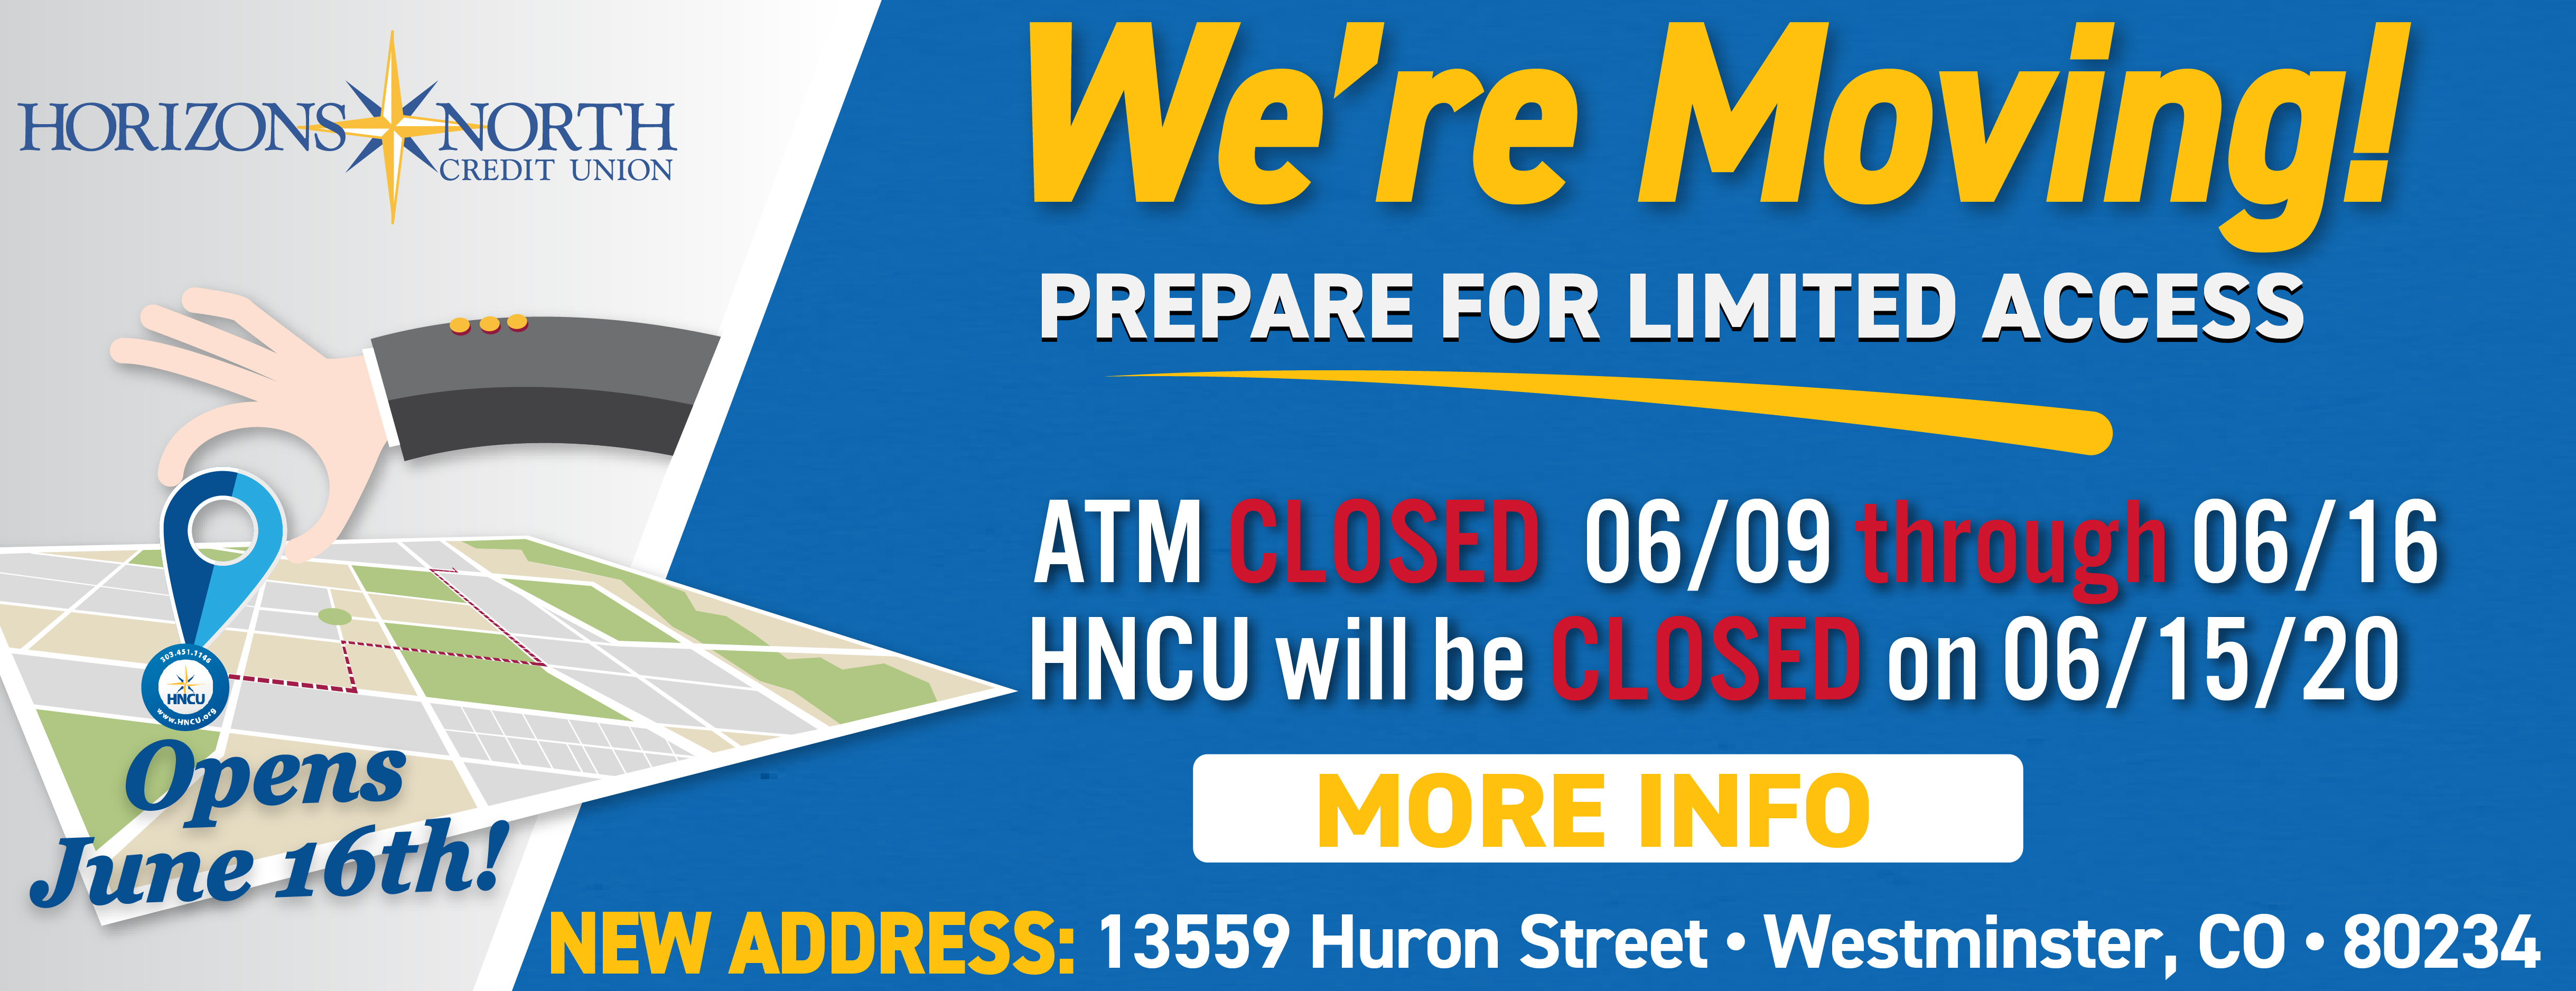 We're Moving! Prepare for Limited Access 6/9 - 6/16. ATM closed 69/ through 6/16. HNCU Closed 6/15. New address: 13559 Huron Street, Westminster, CO 80234  More info (button)